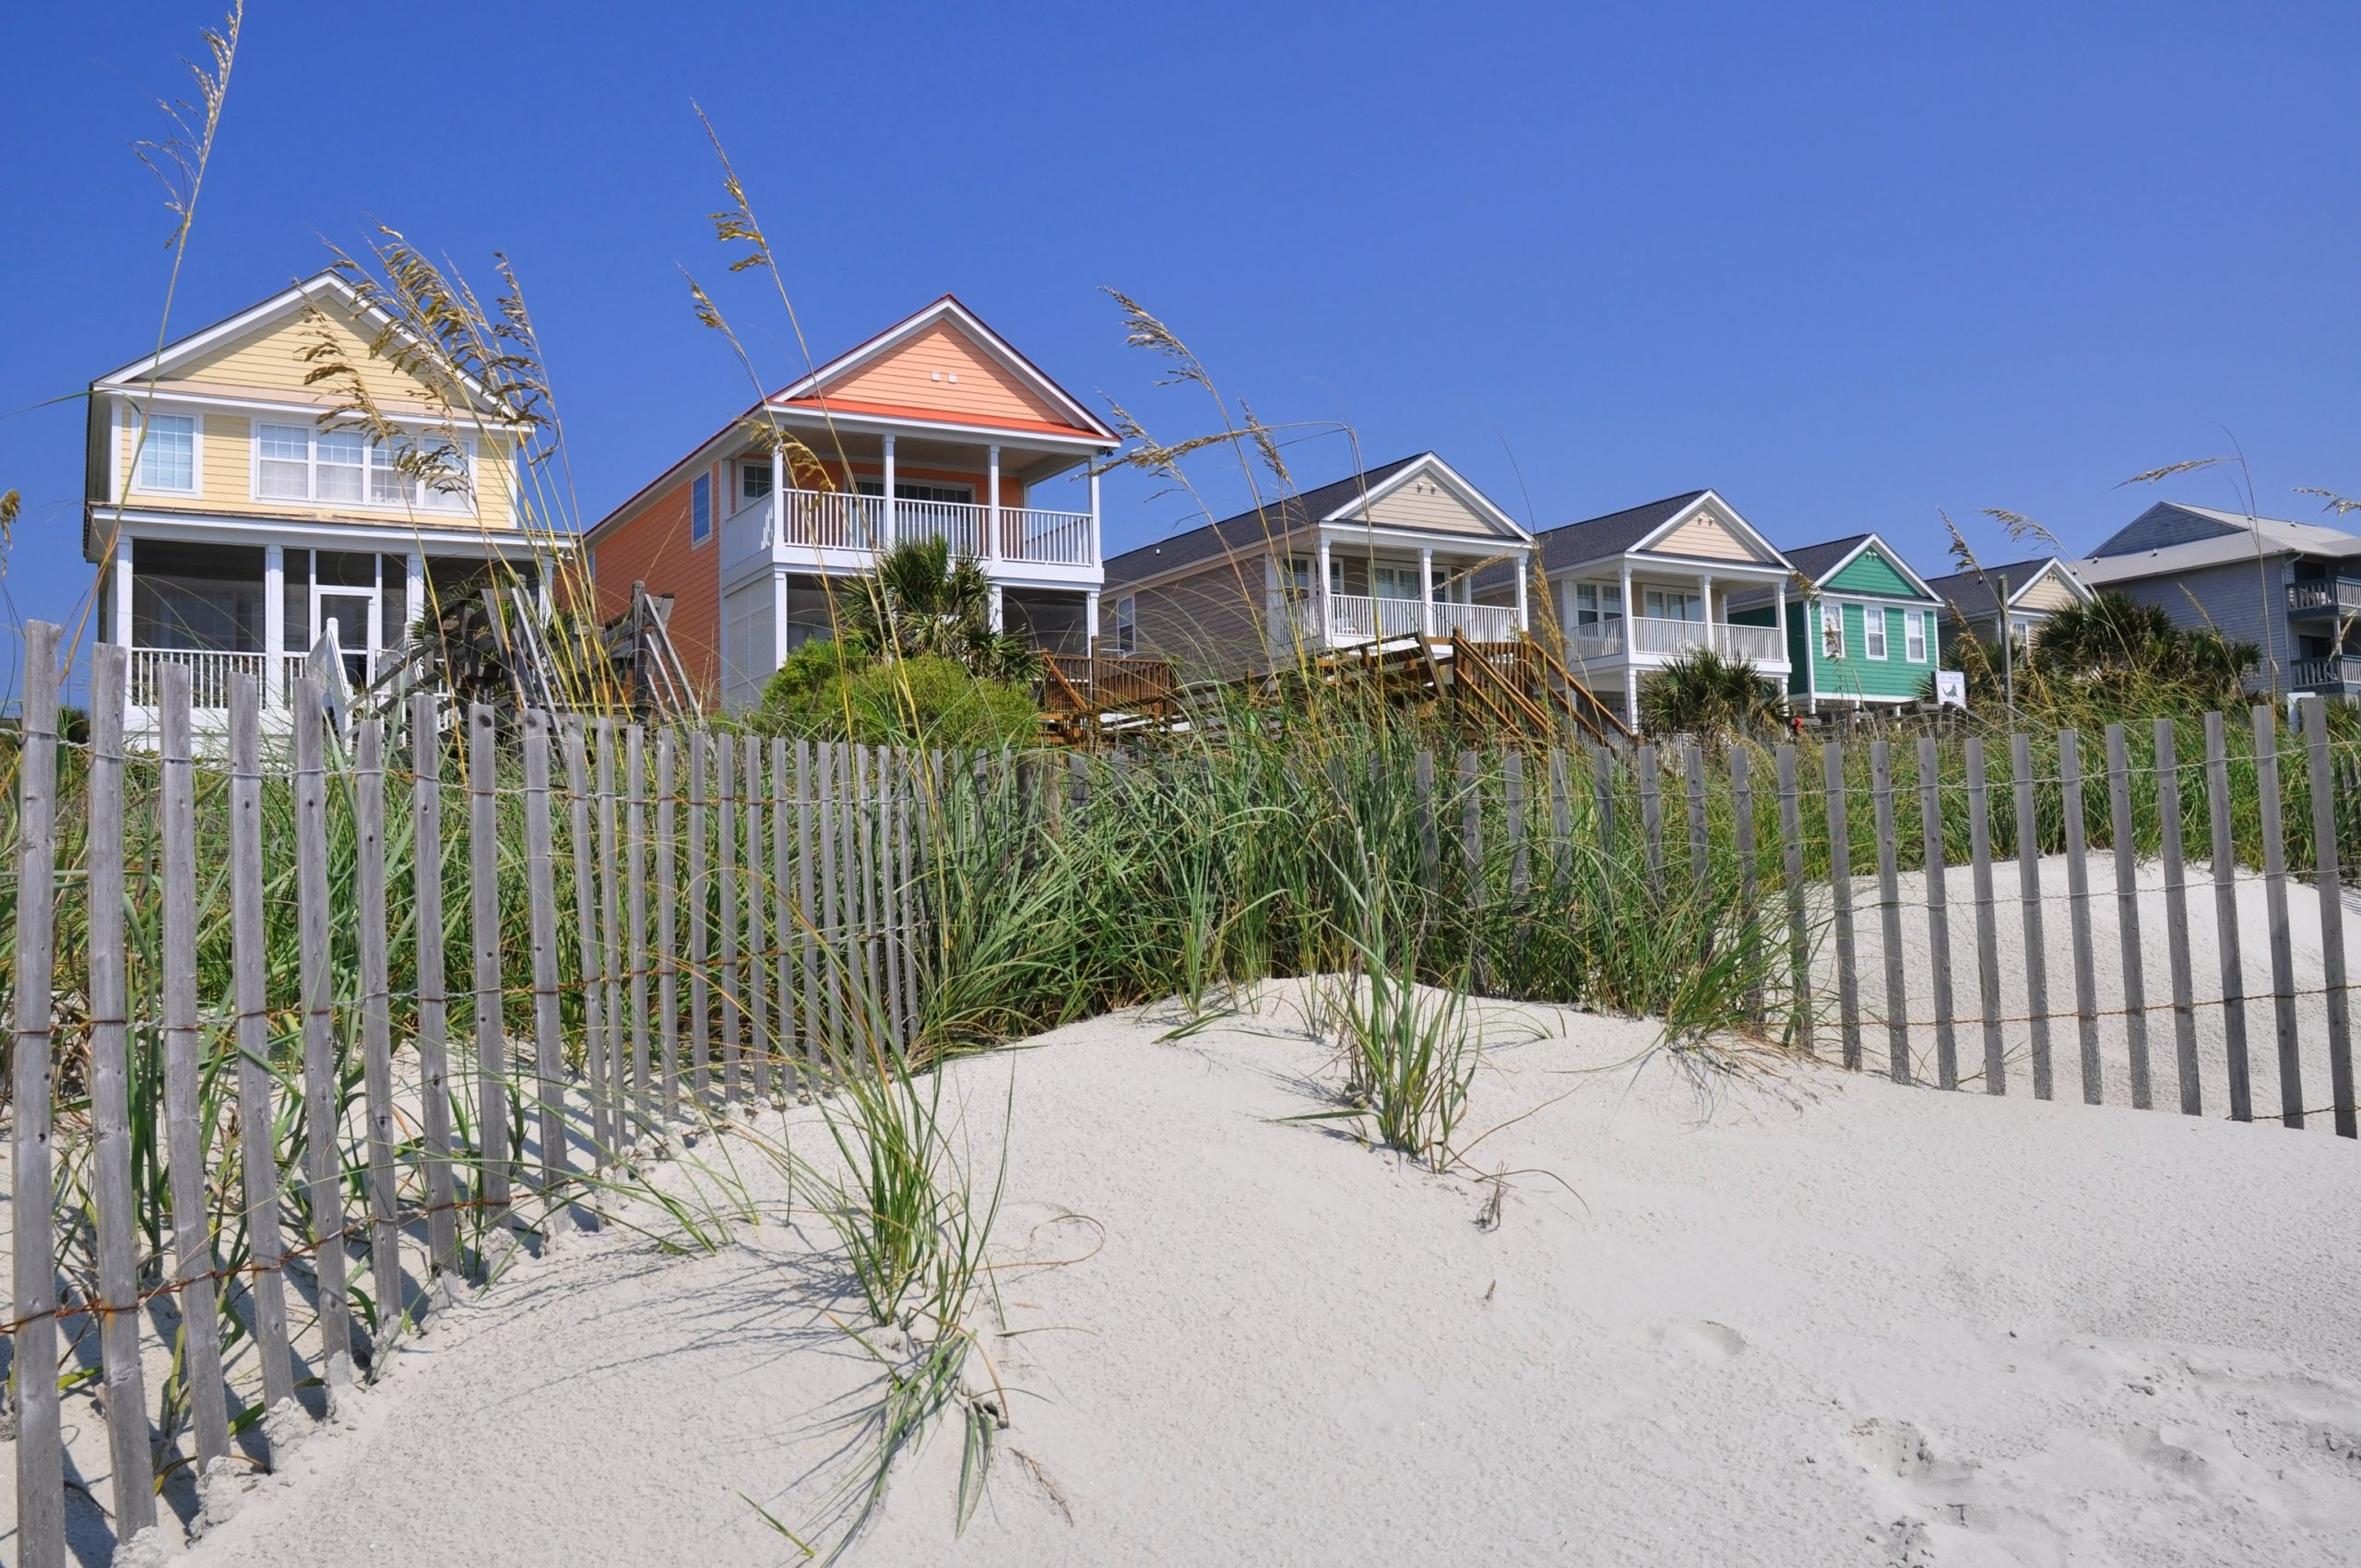 beach homes behind beach dunes